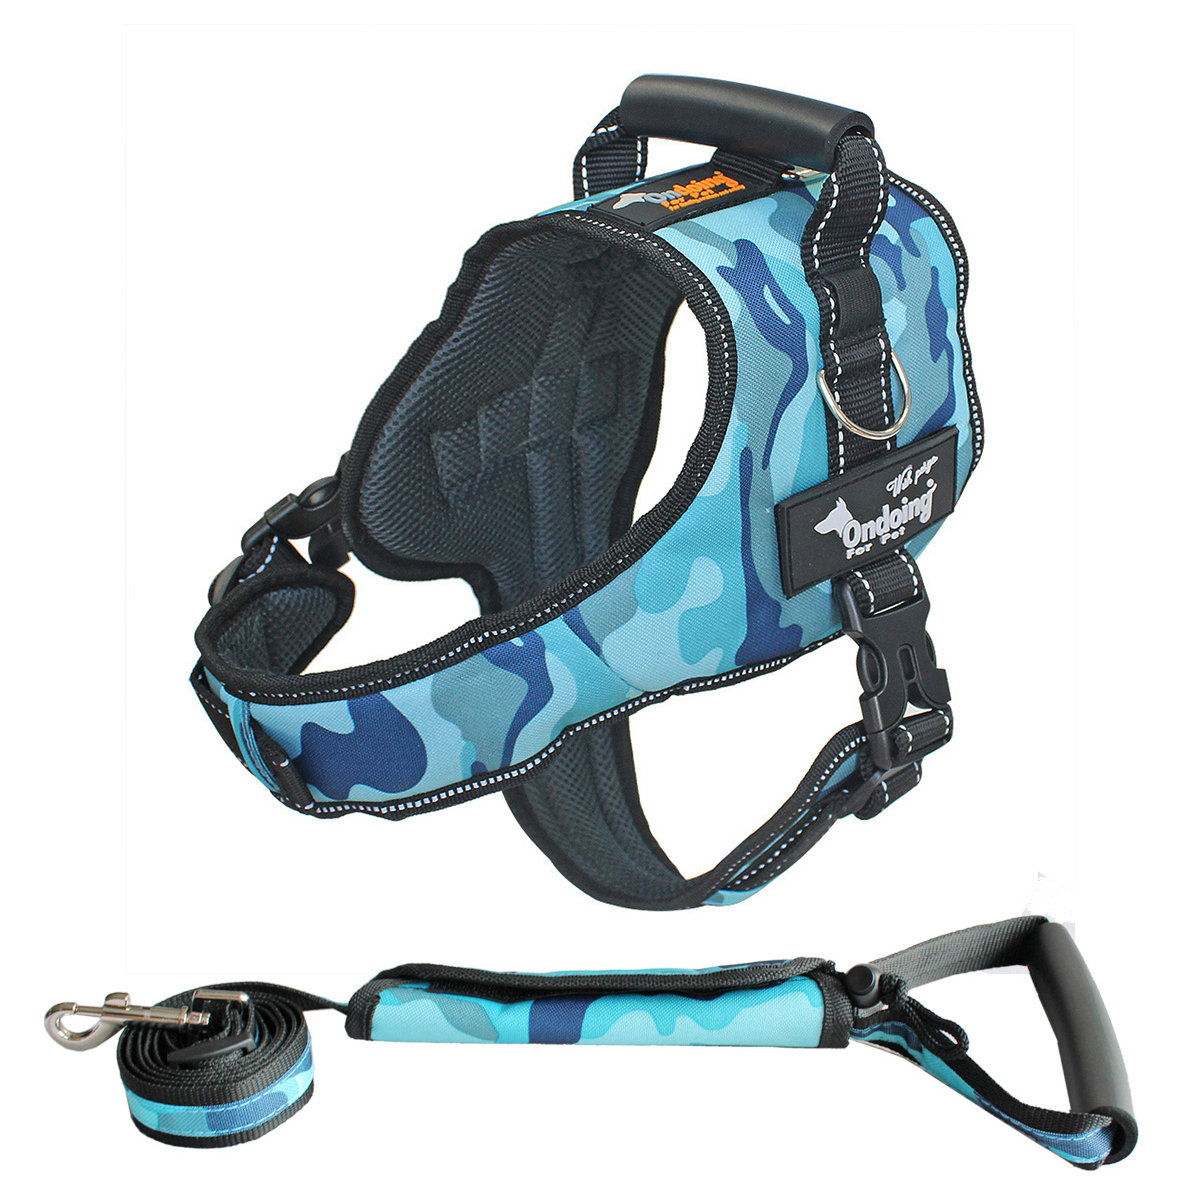 Ondoing Dog Harness Adjustable Pet Vest Harness No Pull Padded Reflective with Leash